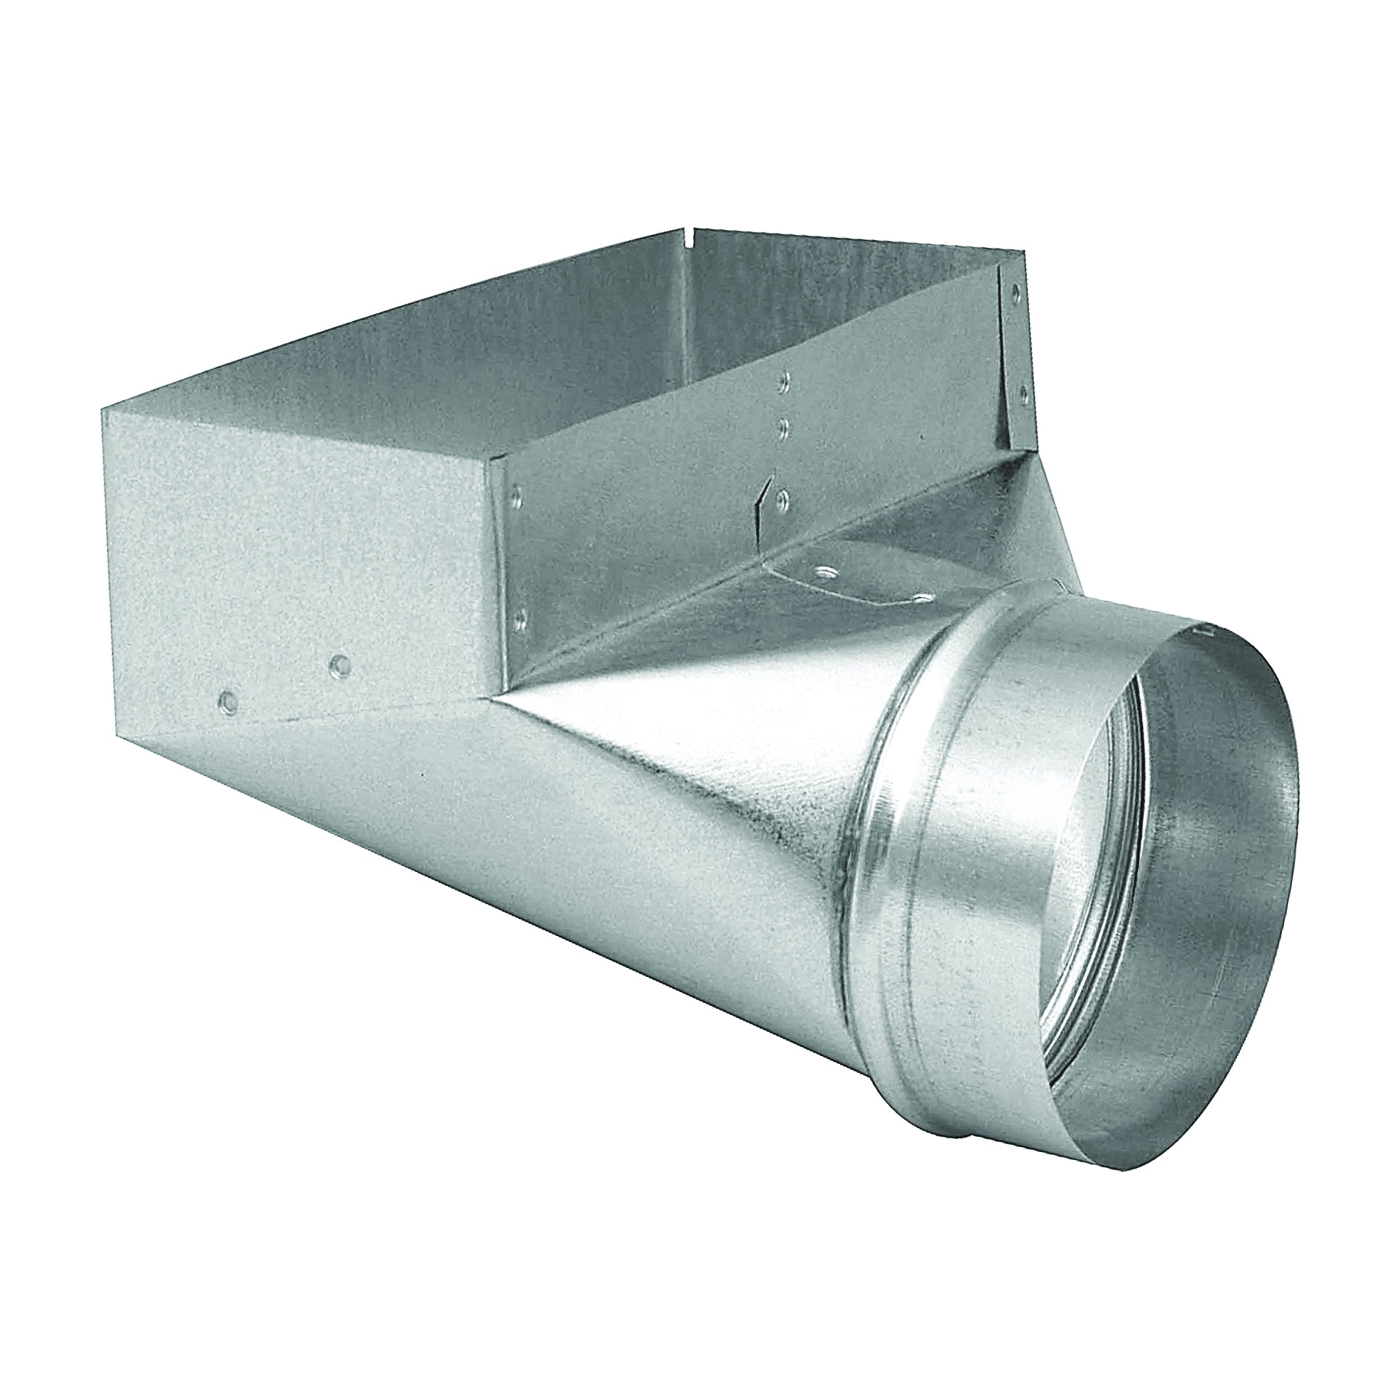 Picture of Imperial GV0627-C Wall Register Boot, 4 in L, 12 in W, 6 in H, 90 deg Angle, Galvanized